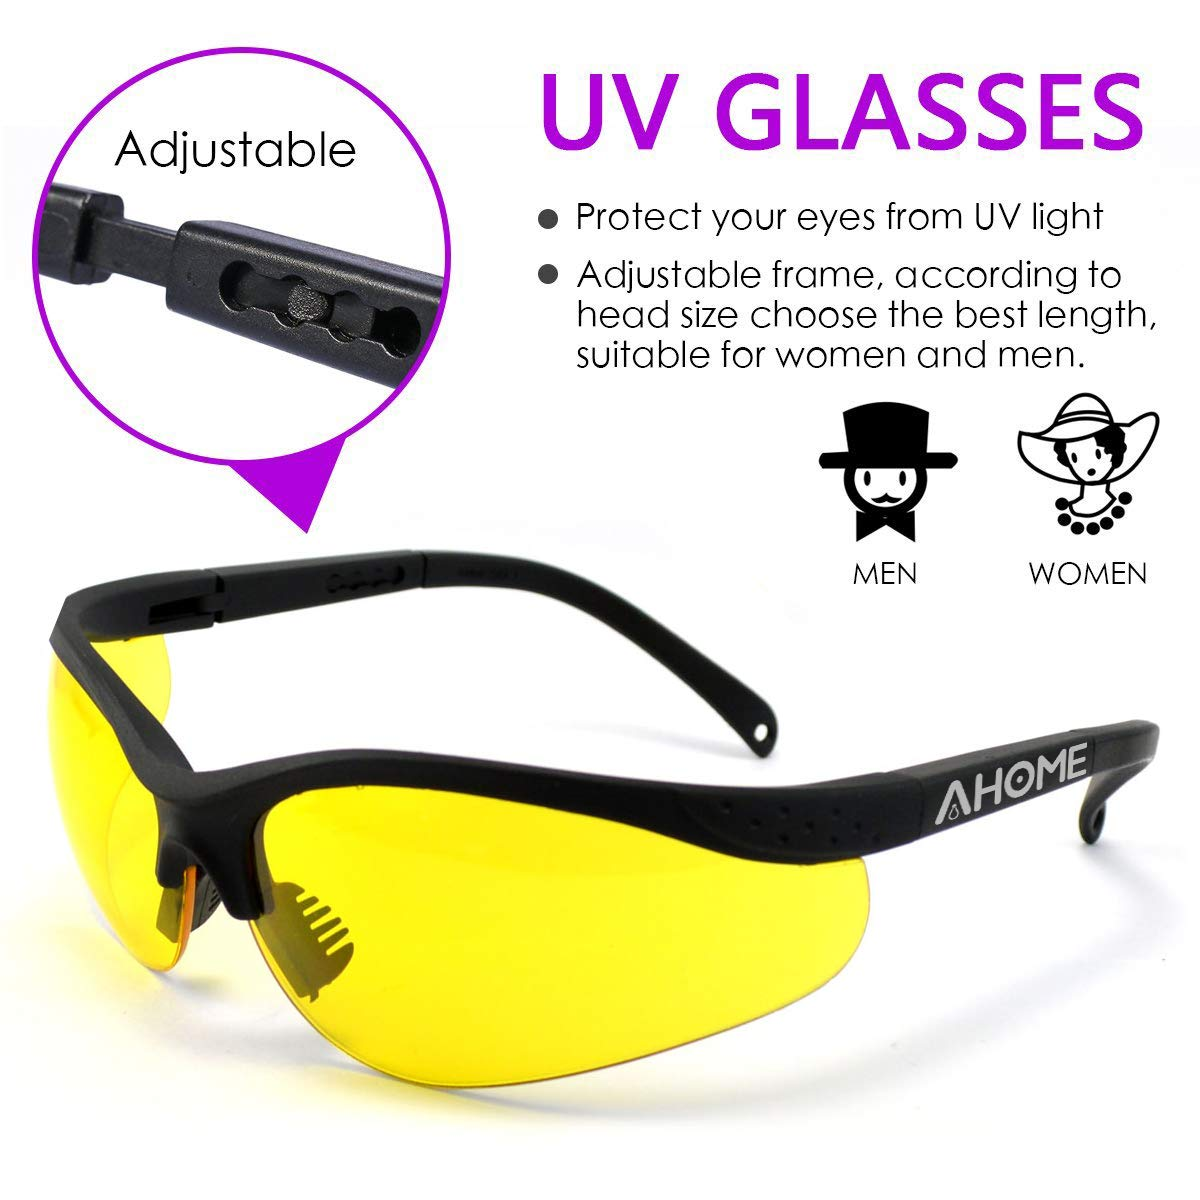 AHOME UV Protection Adjustable Safety Glasses with Protective Carrying Case